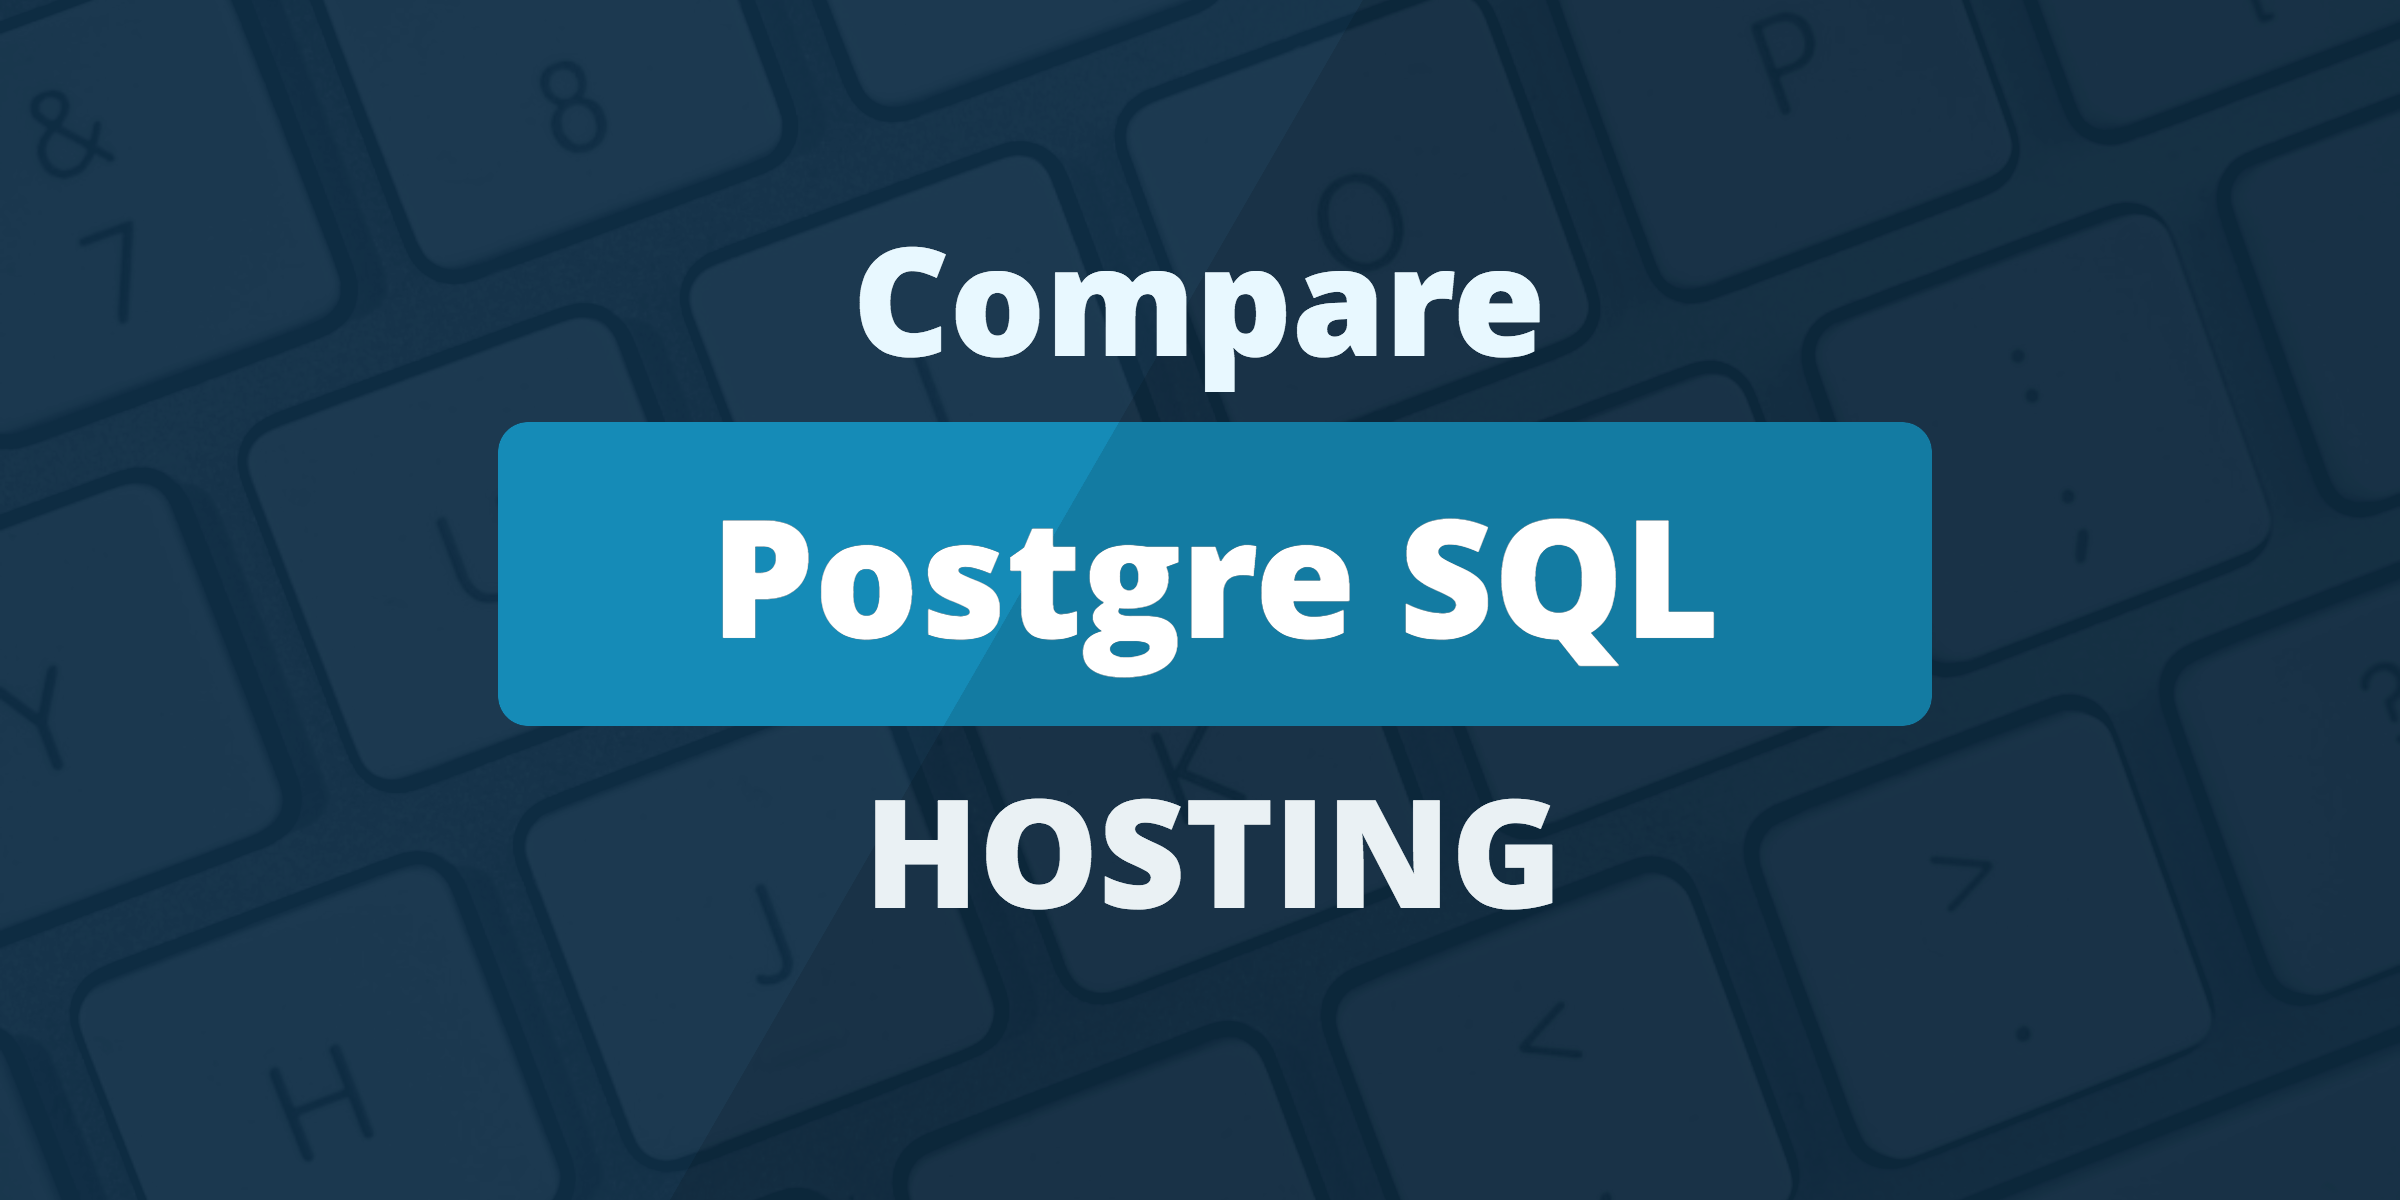 usporedite postgresql hosting